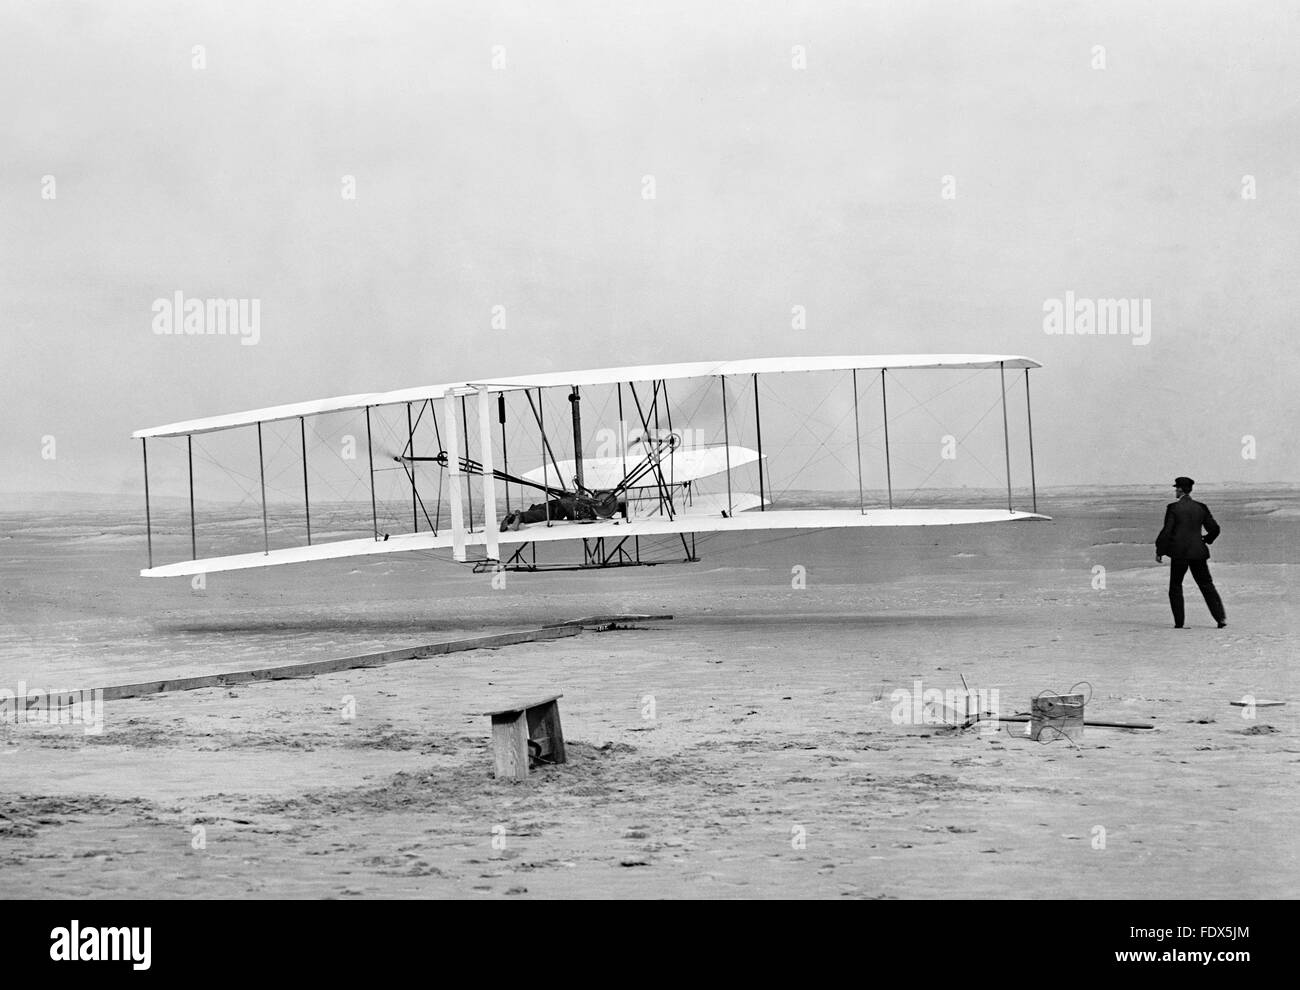 First Flight Kitty Hawk 1903 intended for wright brothers first powered flight in the wright flyer at kill